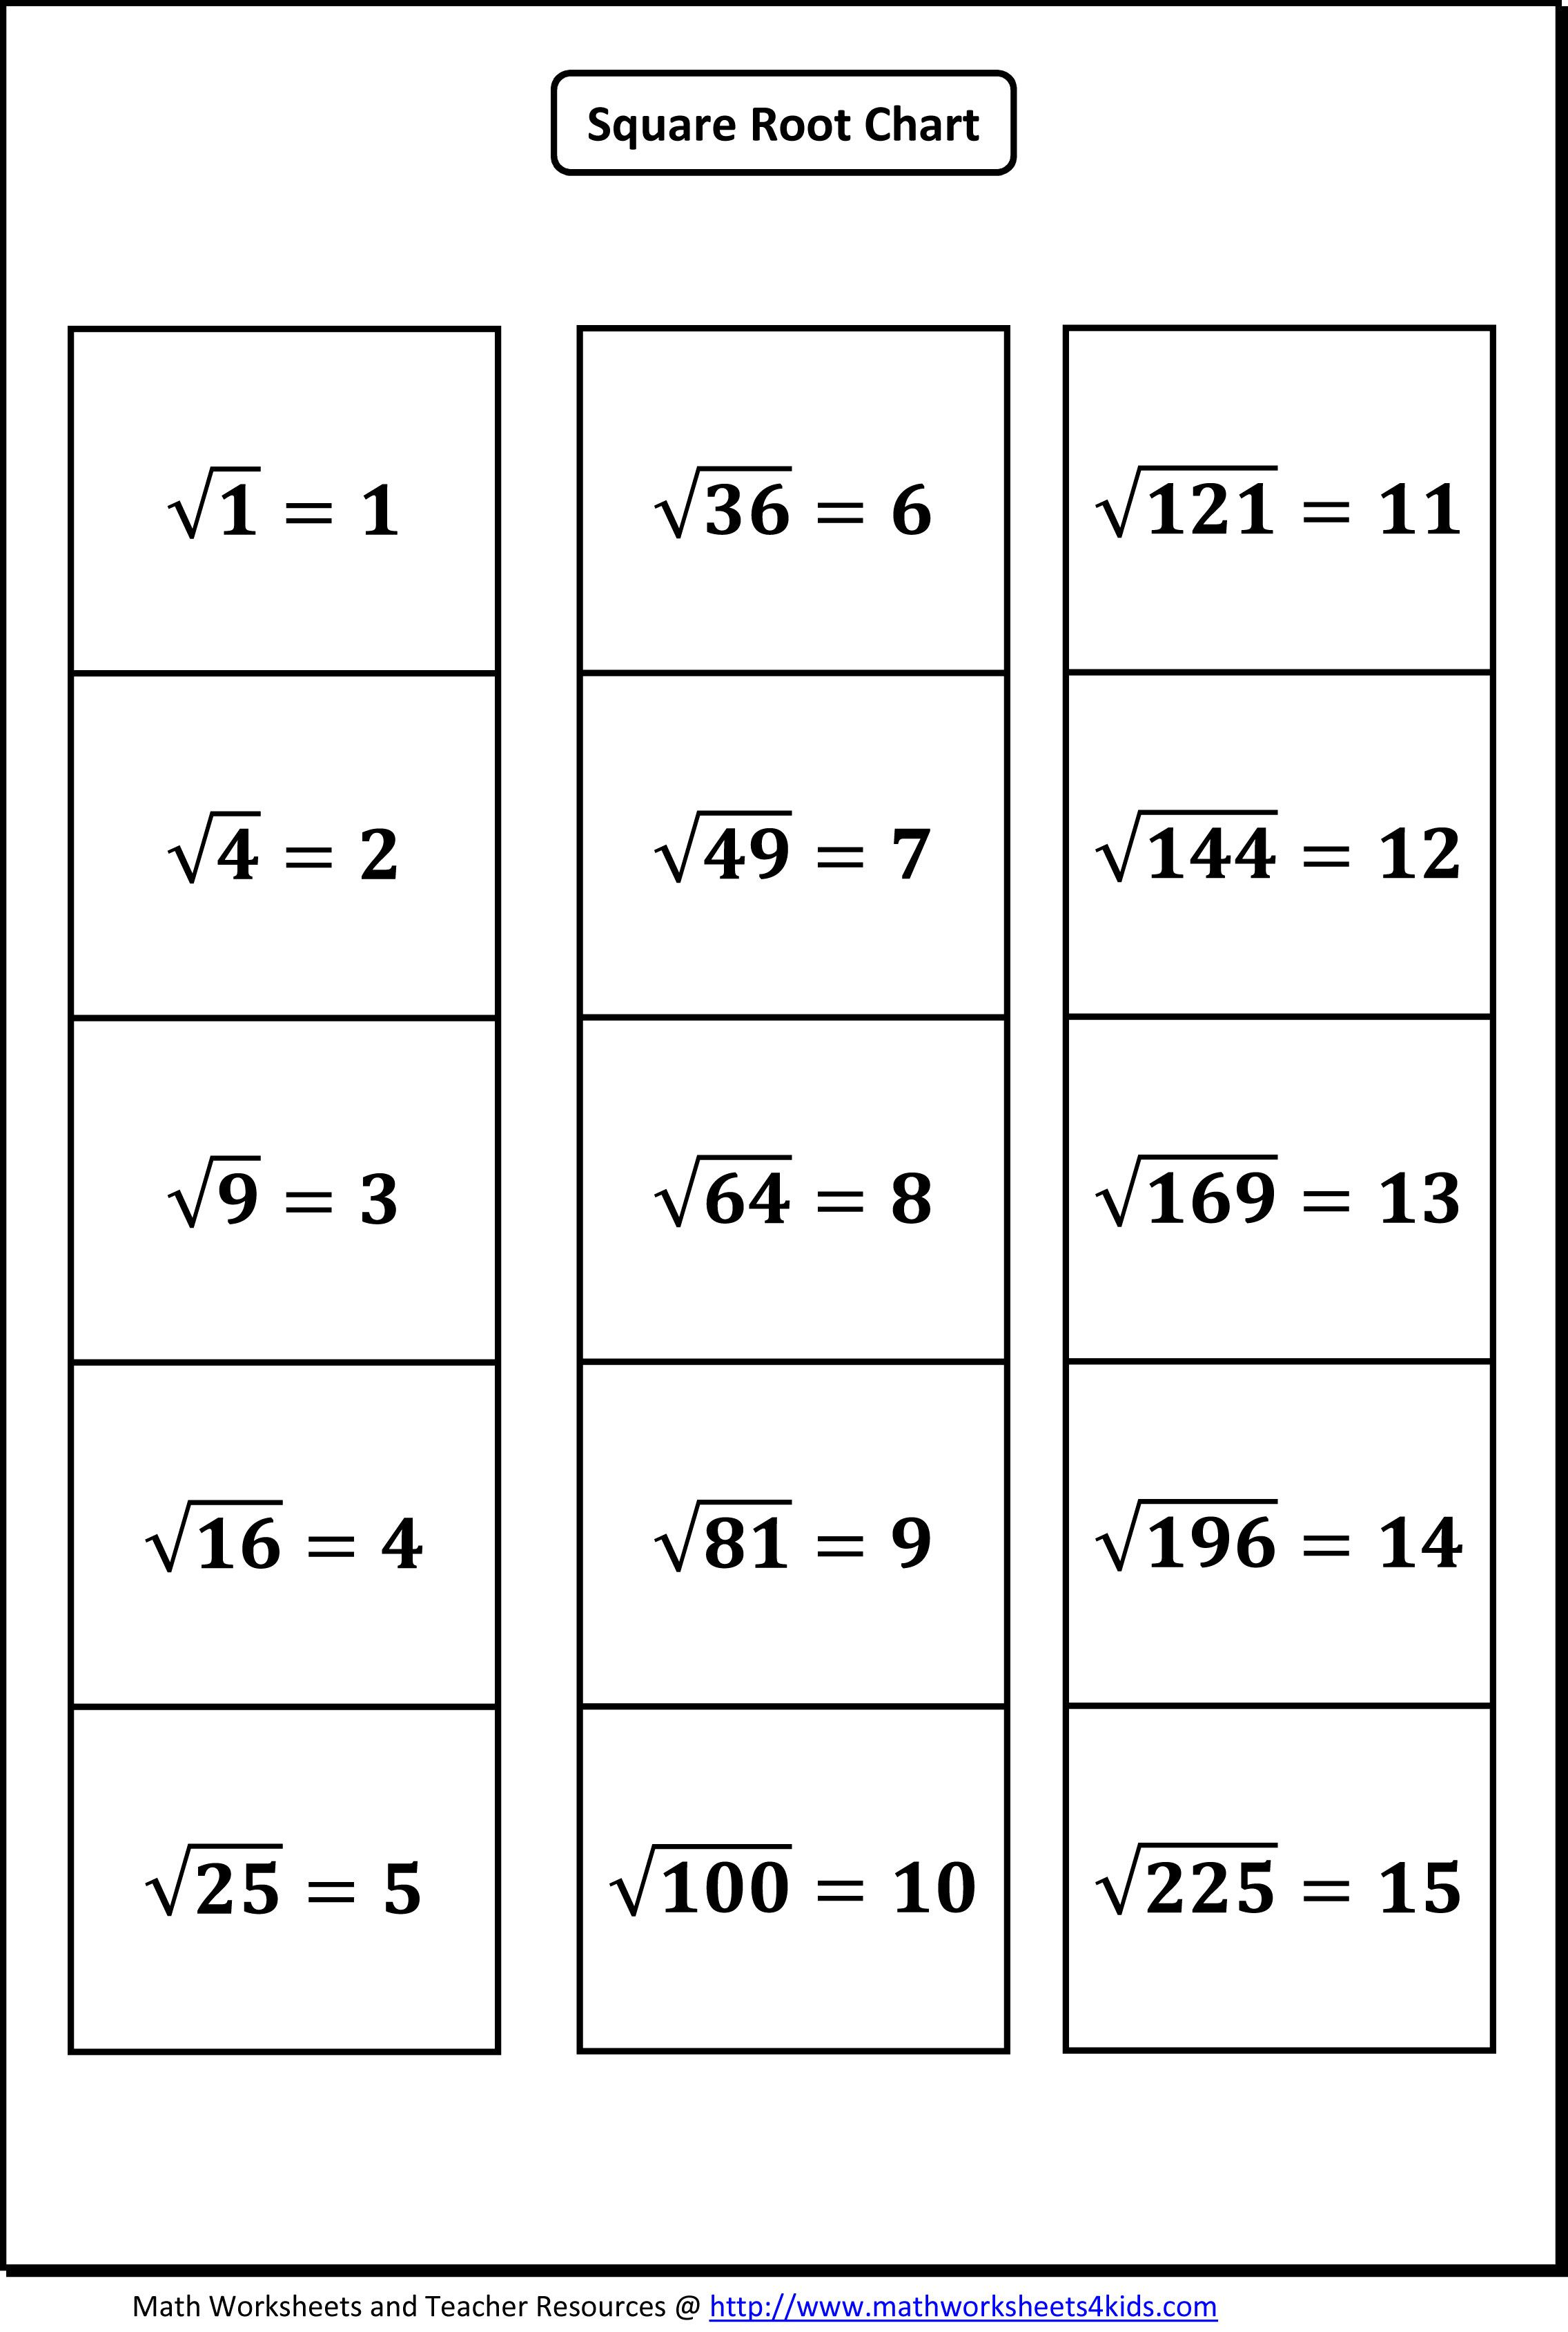 Worksheets Squares Worksheet square root worksheets find the of whole numbers fractions and decimals charts for teachers homeschool